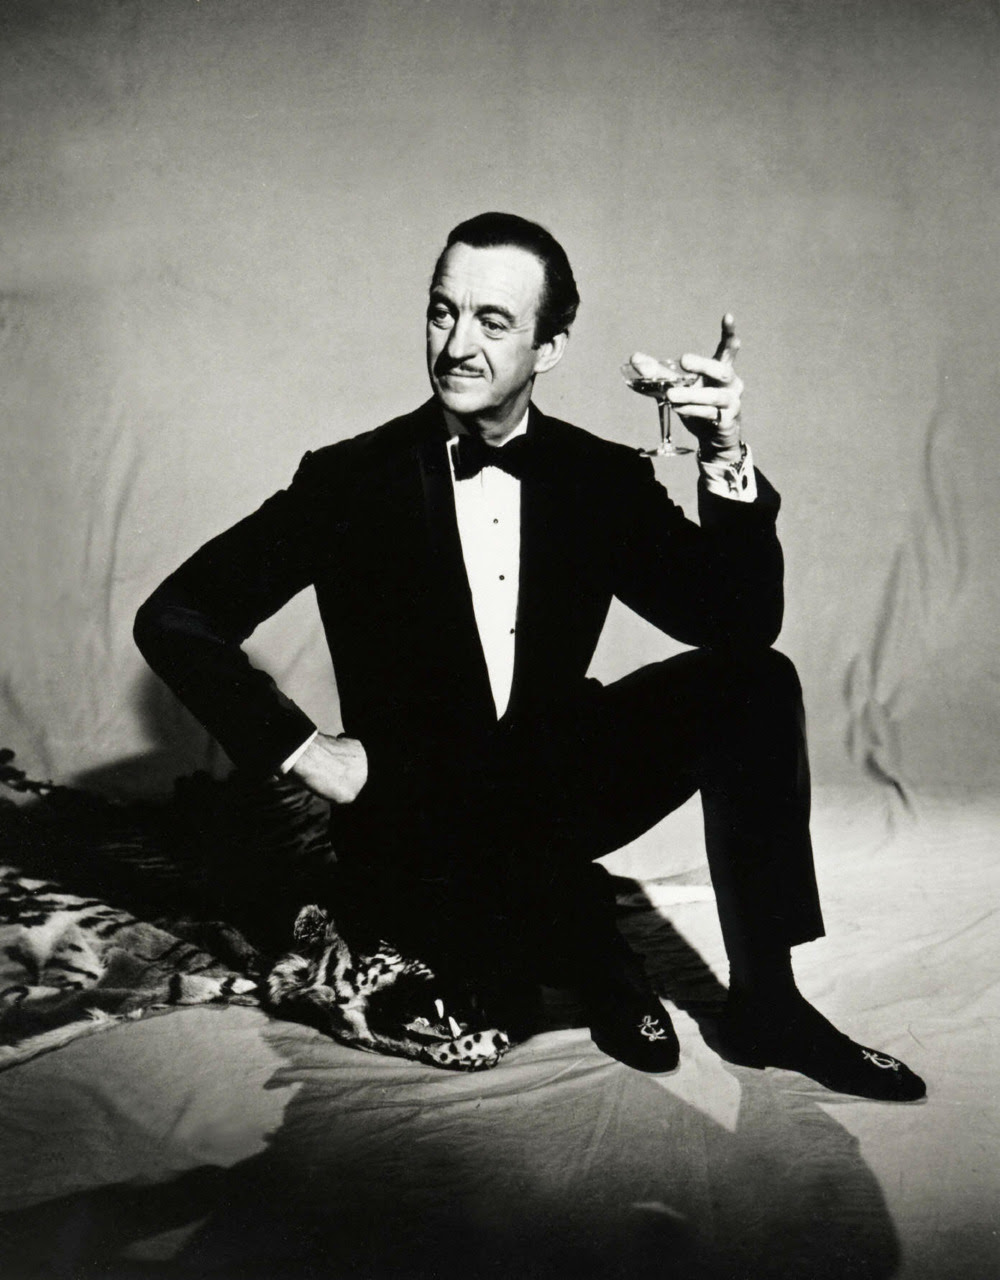 David Niven after the war